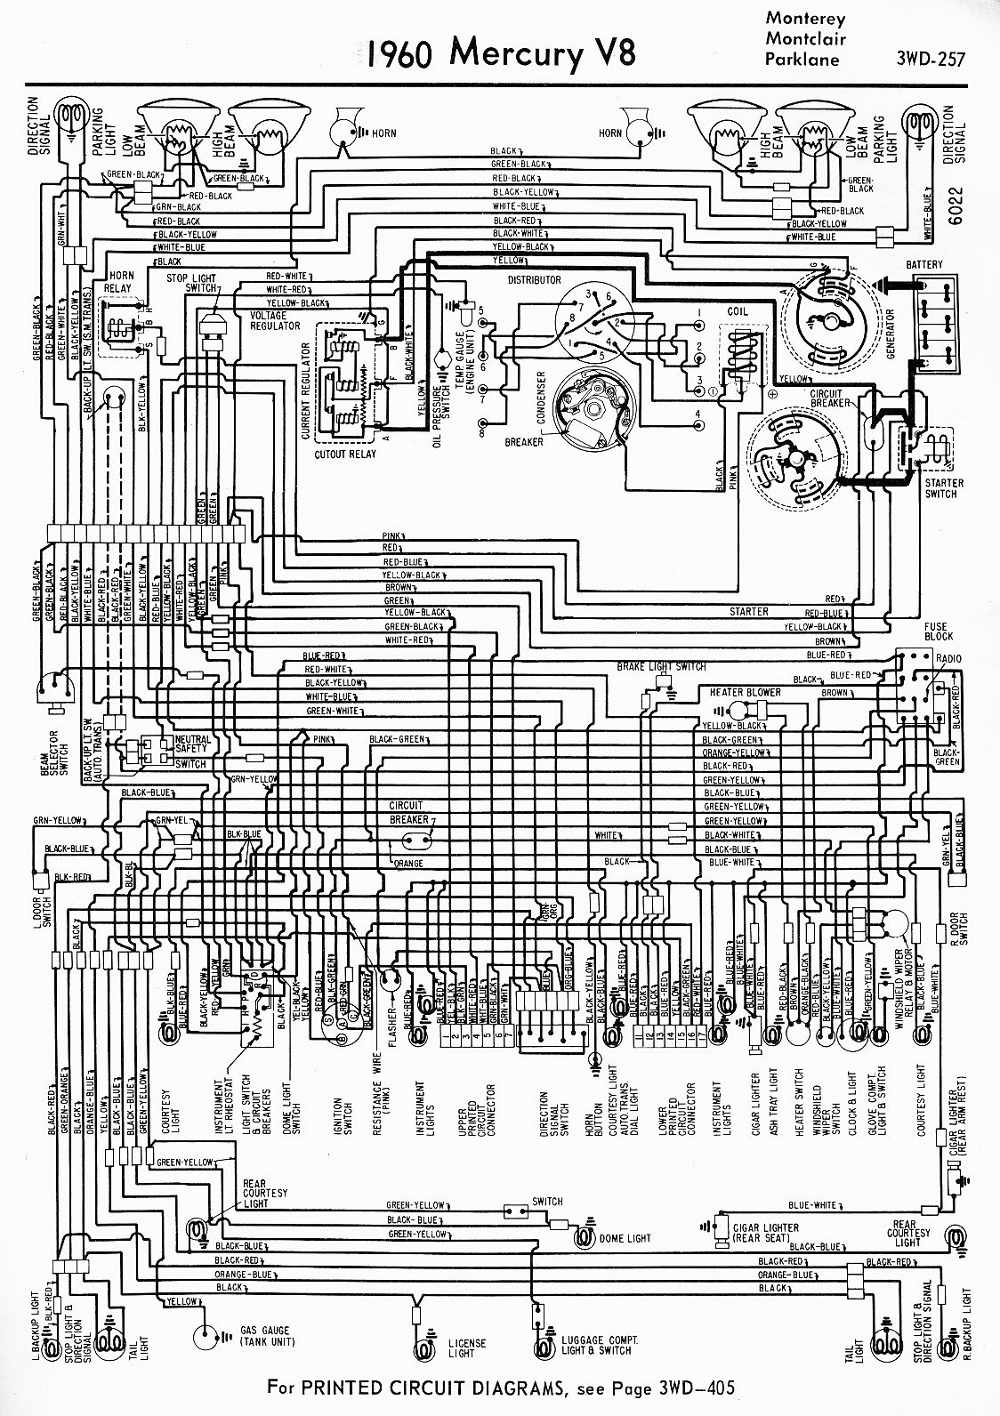 bluebird wiring diagram wiring diagrams schematics rh o d l co blue bird wiring diagrams 2006 bluebird school bus wiring diagrams